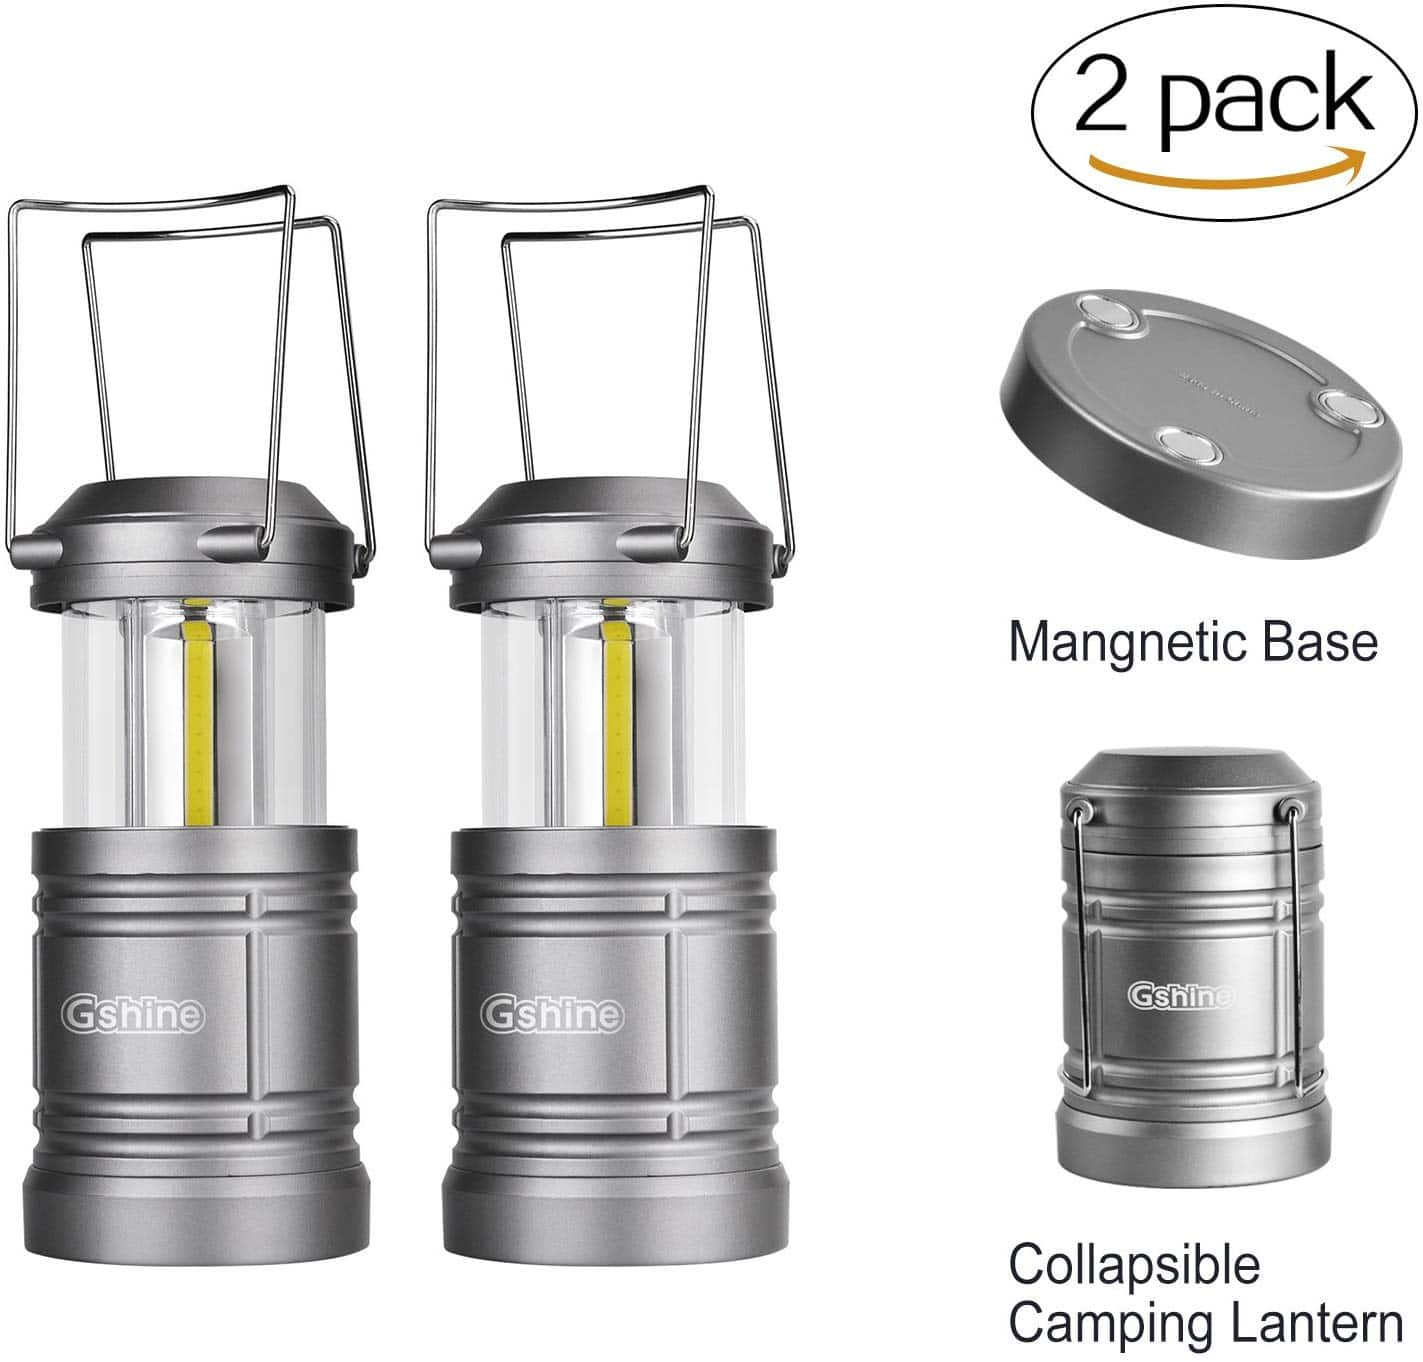 [Amazon] Camping Lantern Battery Powered LED Lantern with Magnetic Base (Pack 2) $9.99